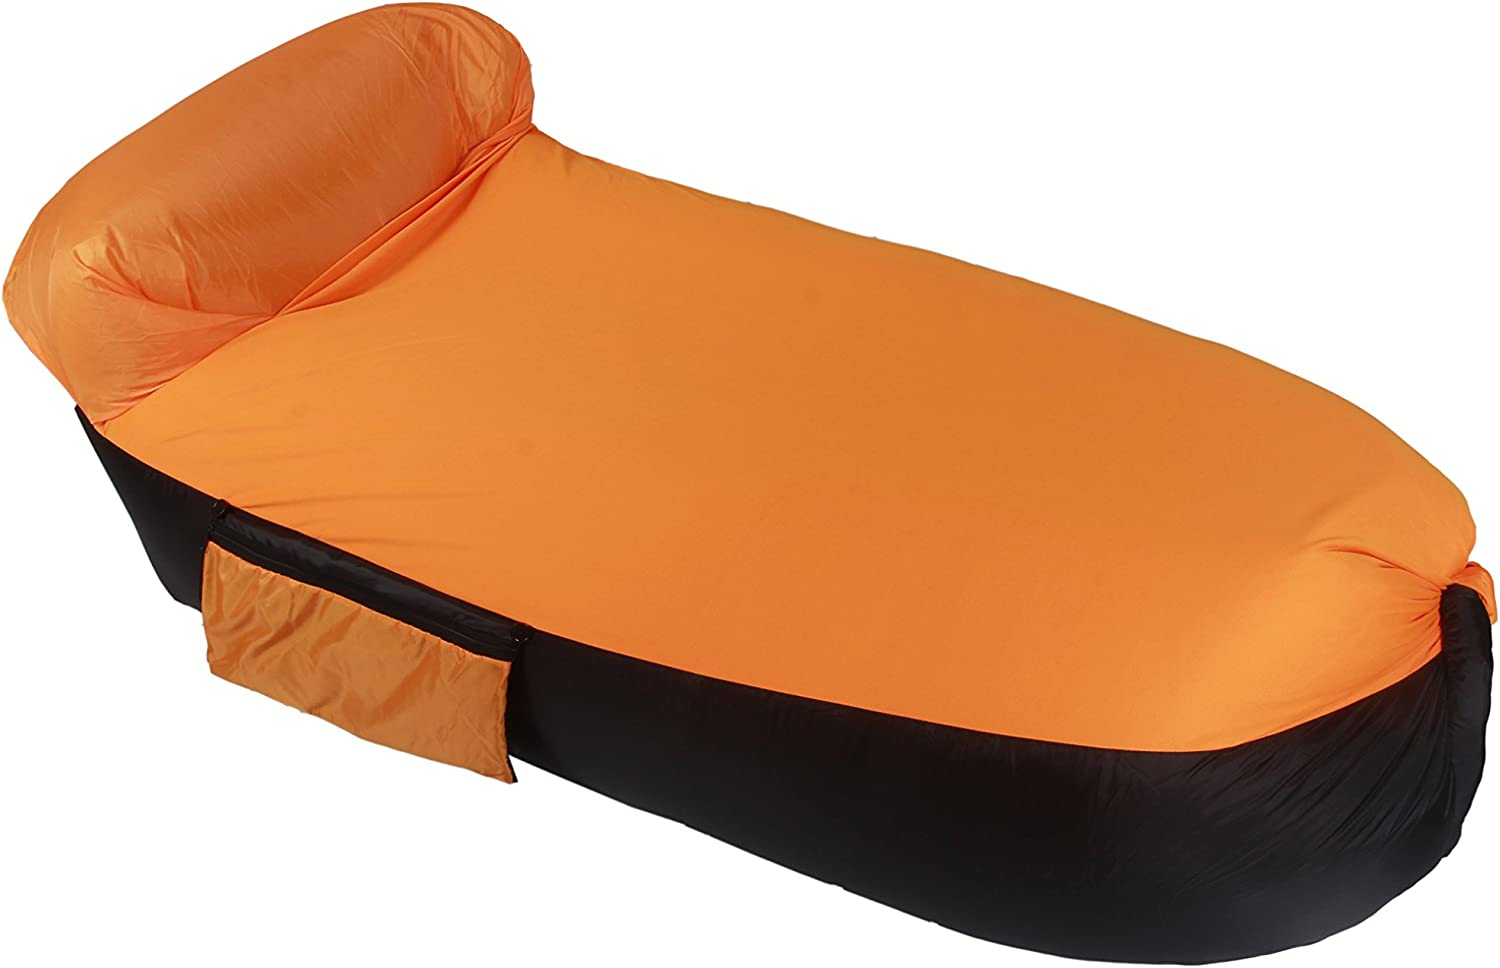 Inflatable Lounger Couch, URVOGUE Portable Relax Air Bag Sofa Lazy Bed Sleeping Chair for Camping Beach